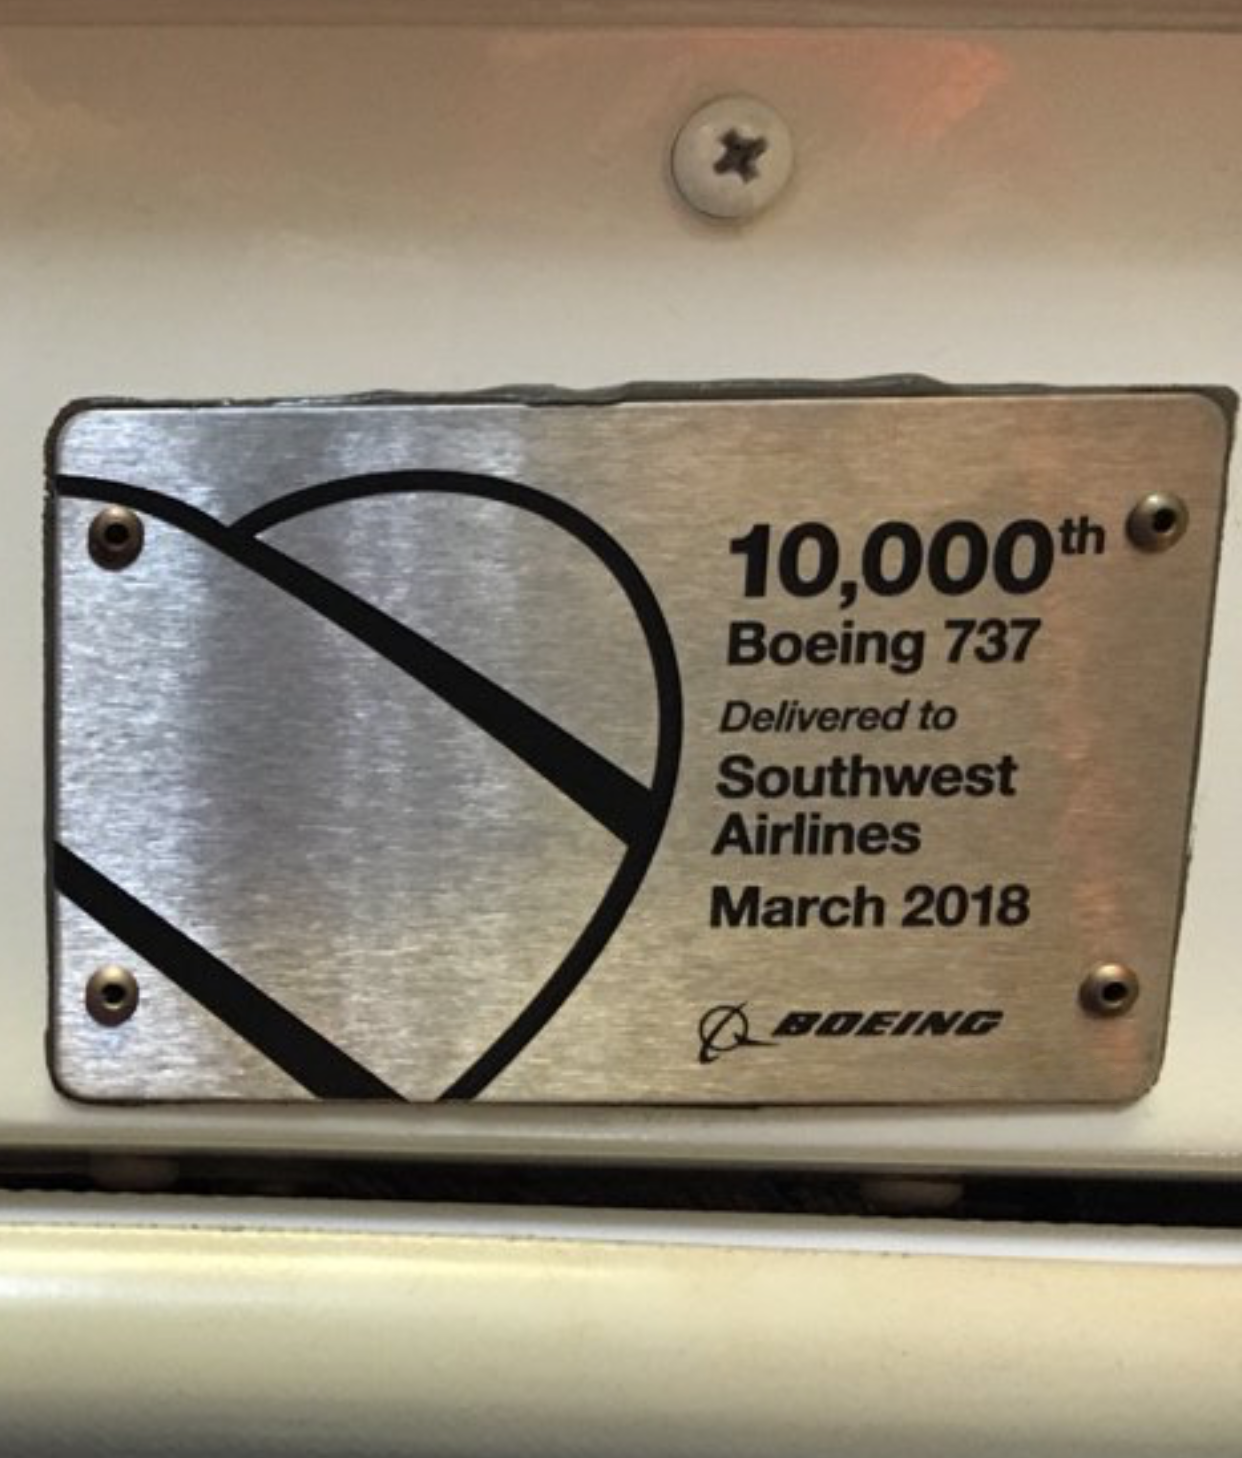 Boeing-737-placard-in-airplane.png